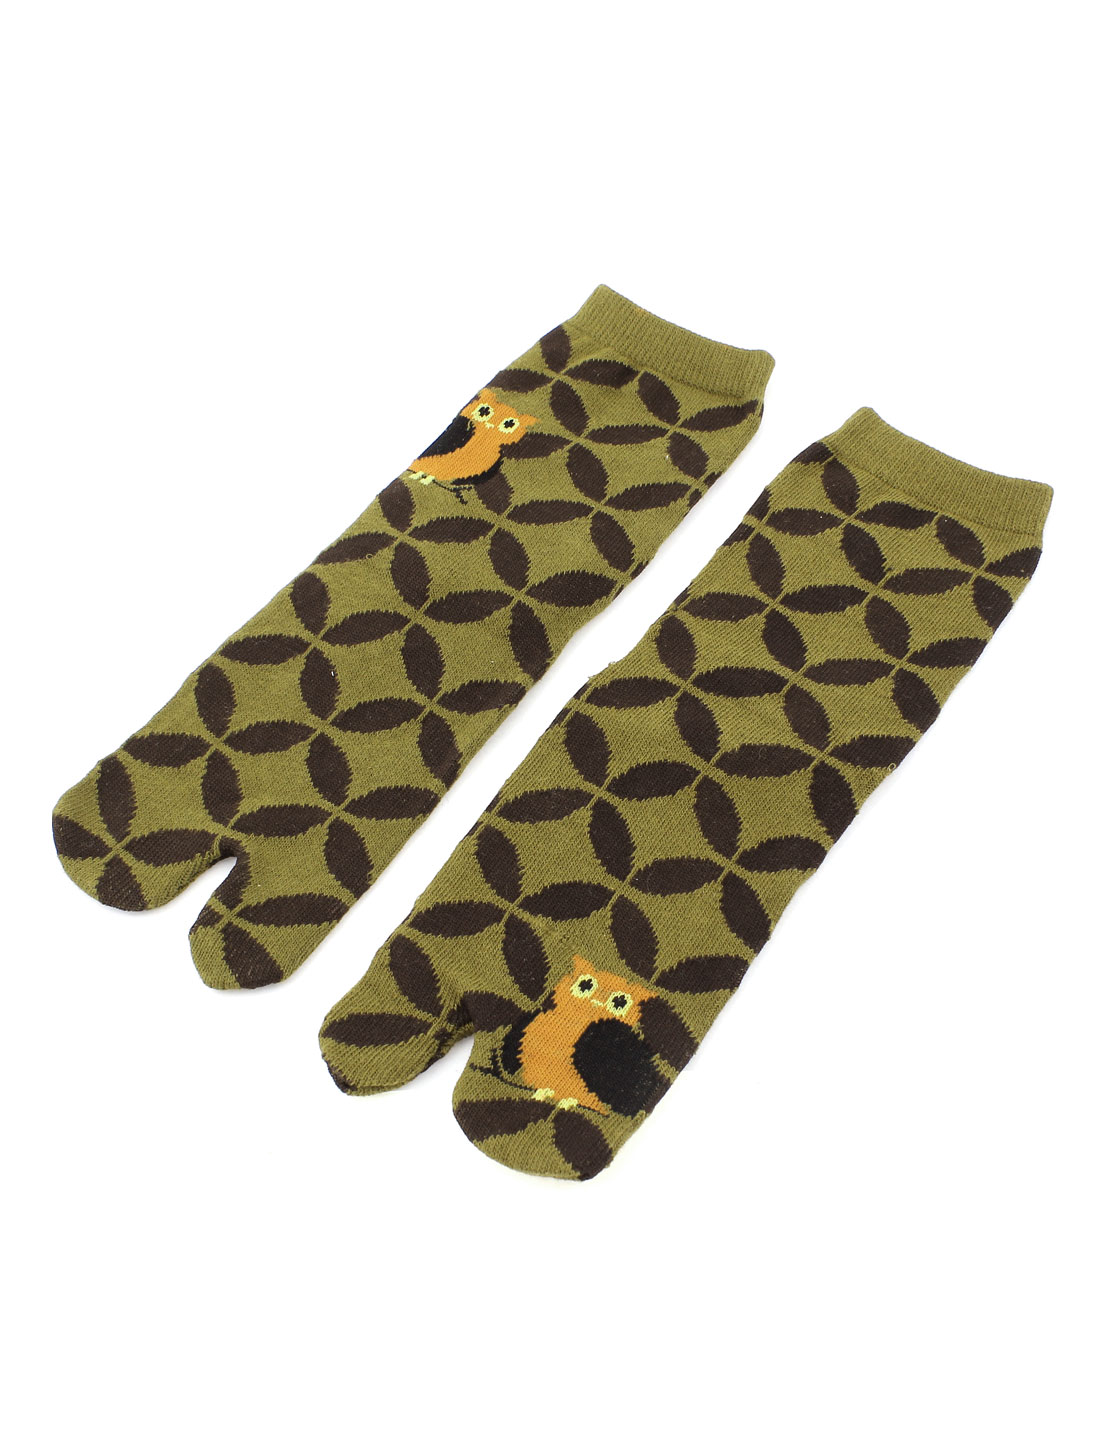 Pair Circle Owl Print Elastic Cuff Ankle High Hosiery Funny Feet Toe Sockings Socks Olive Green Brown for Women